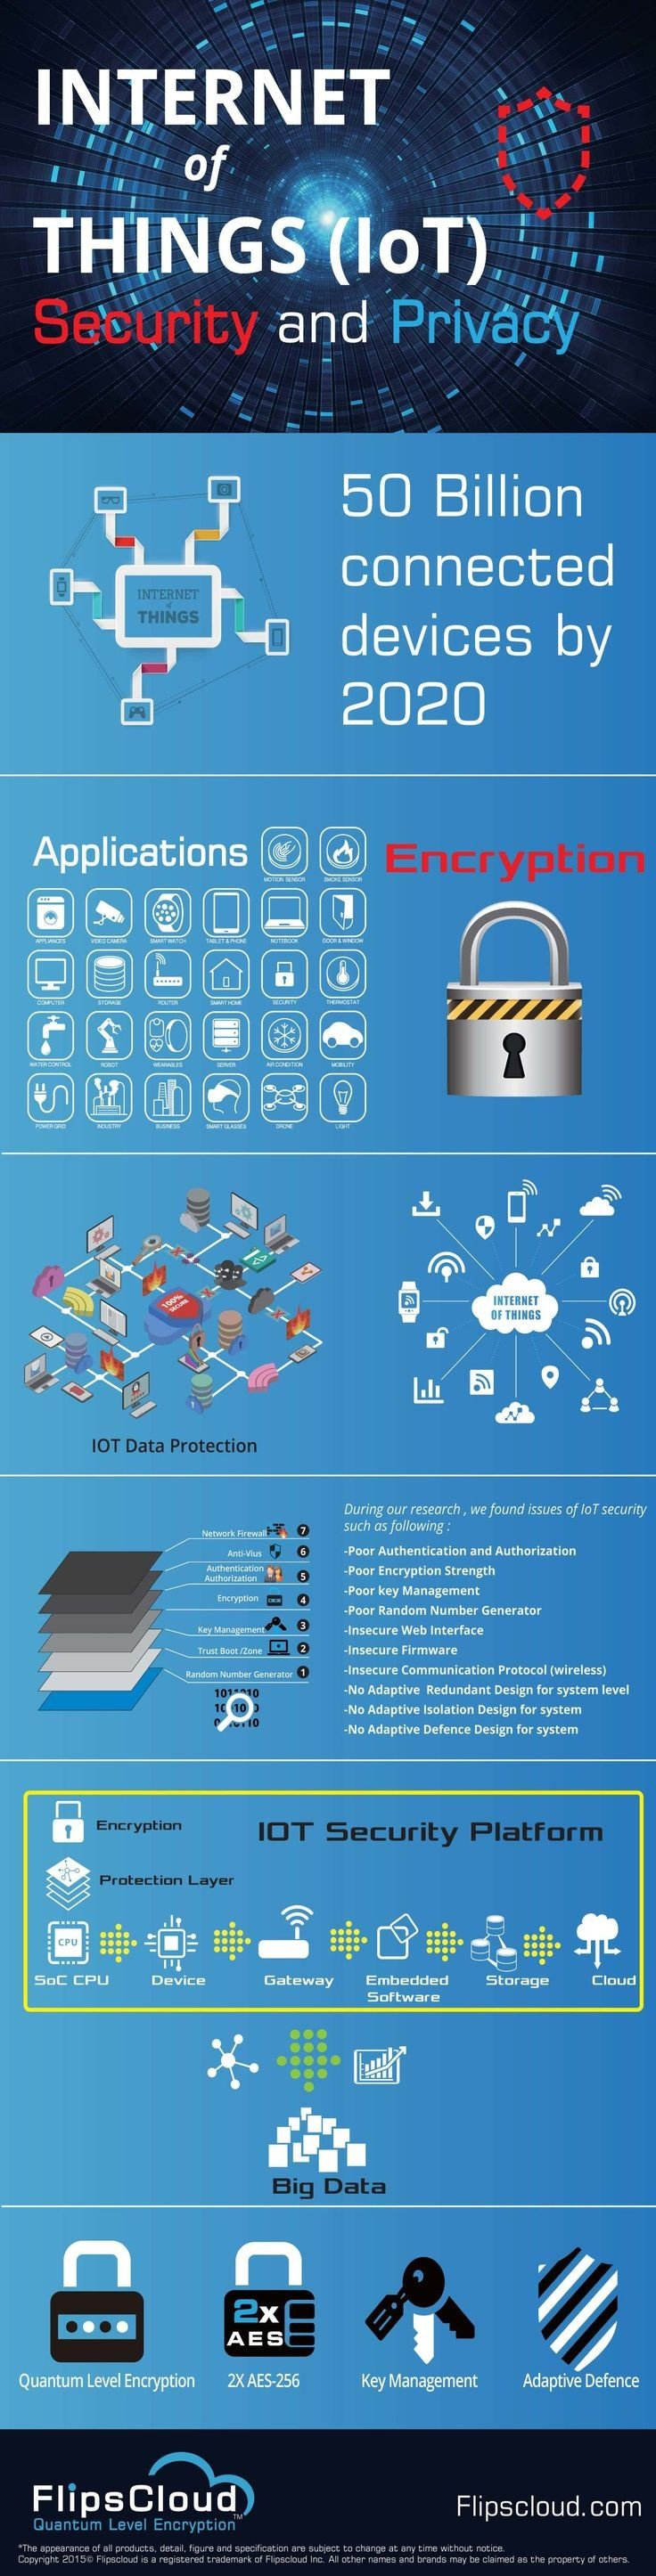 The internet of things #IoT security and privacy #smart_city #Infographic